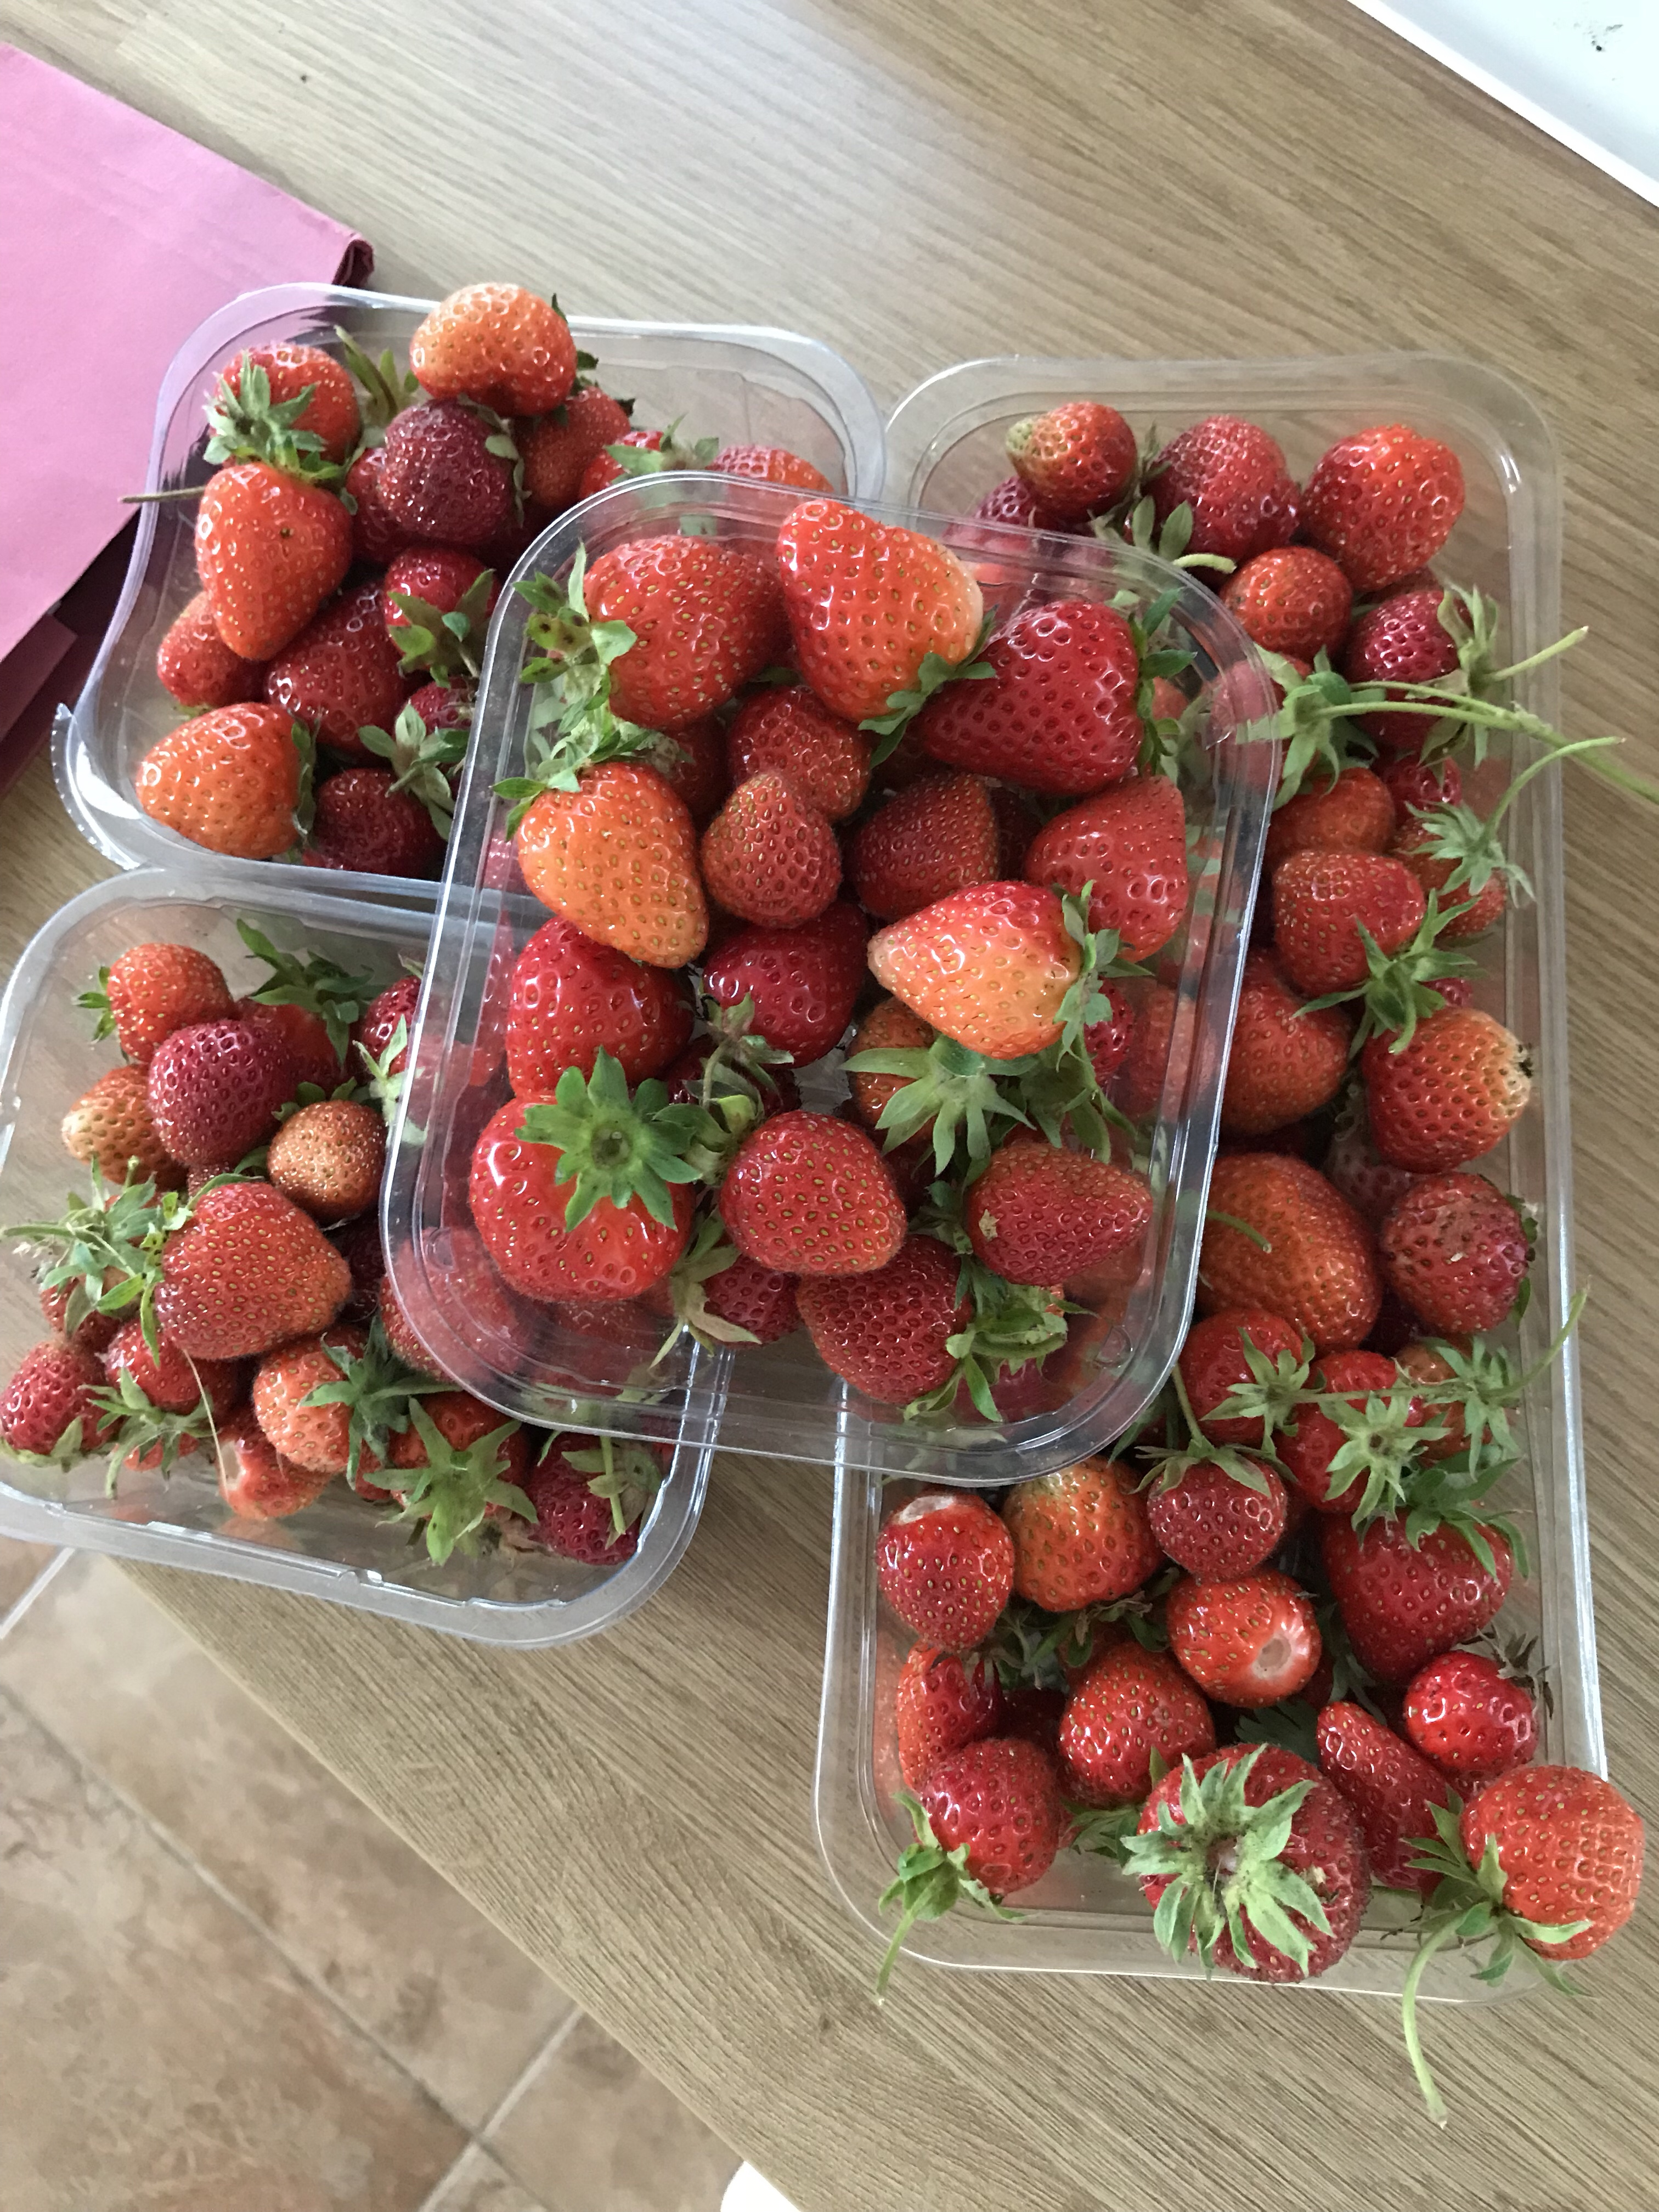 Lots of strawberries in punnets